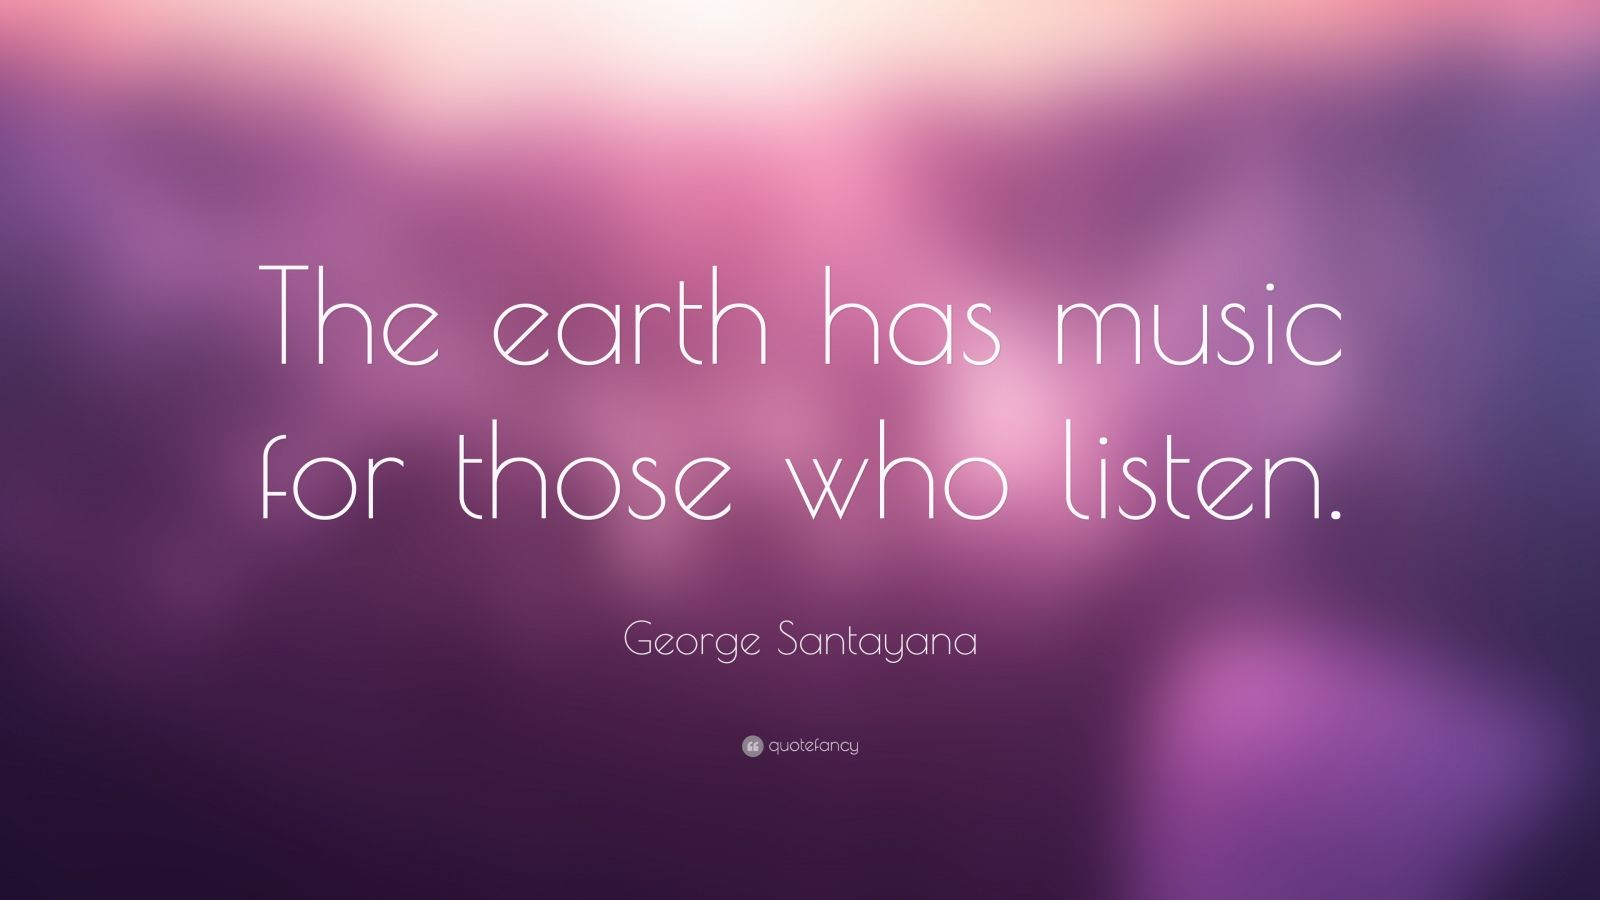 John Muir Quotes Wallpaper George Santayana Quote The Earth Has Music For Those Who